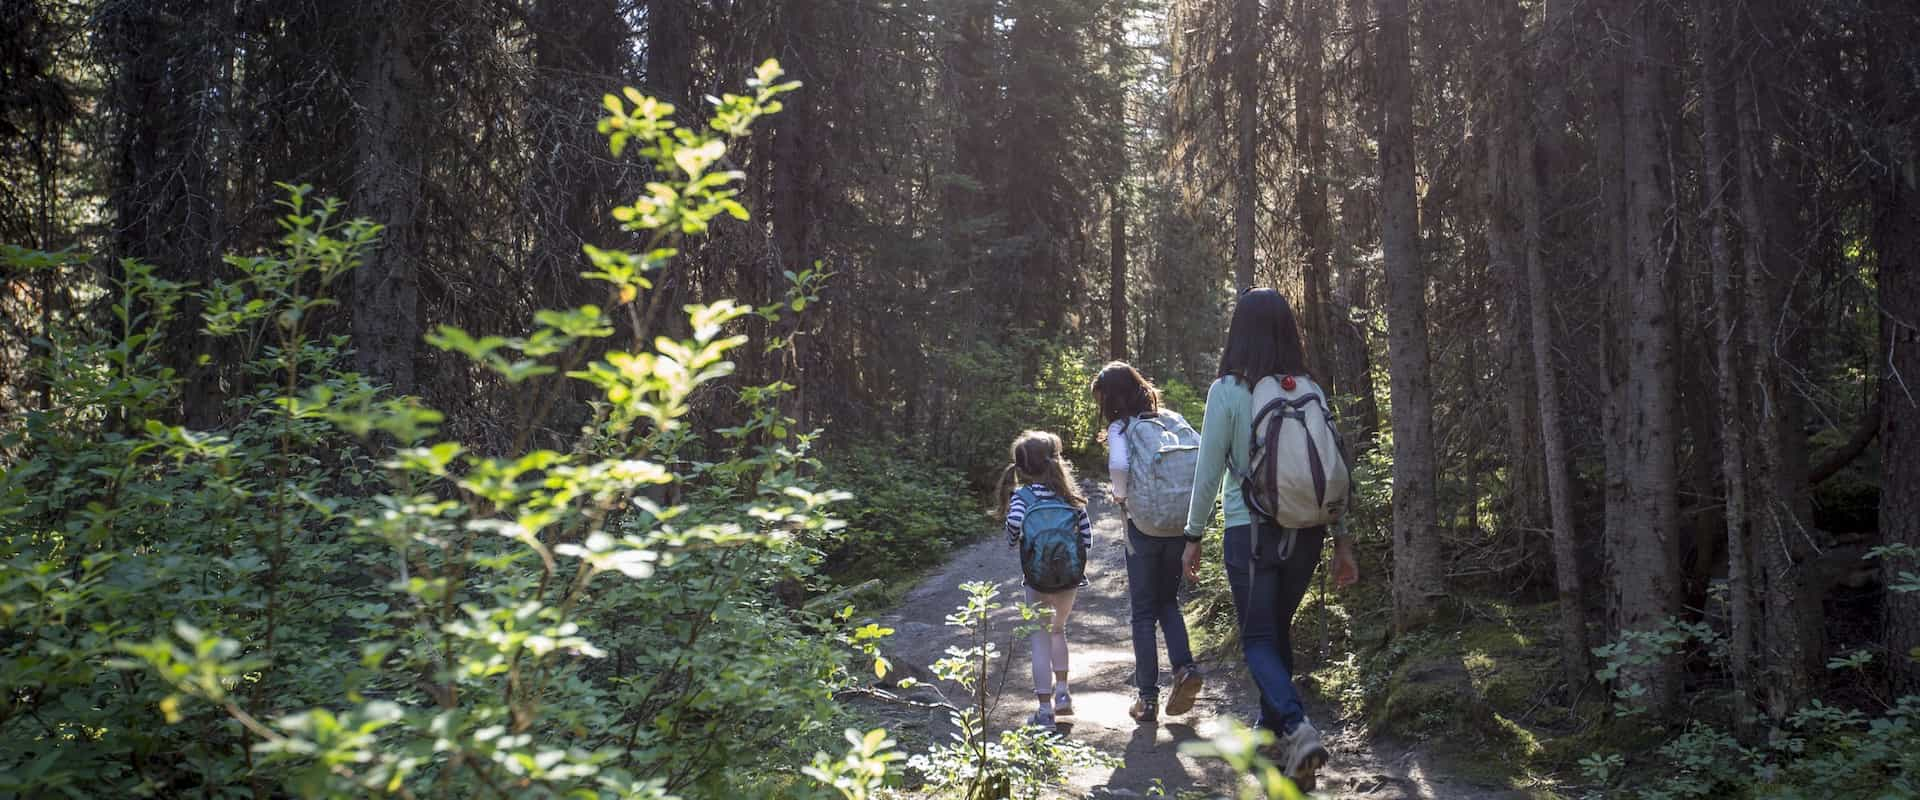 Family hiking in Banff National Park